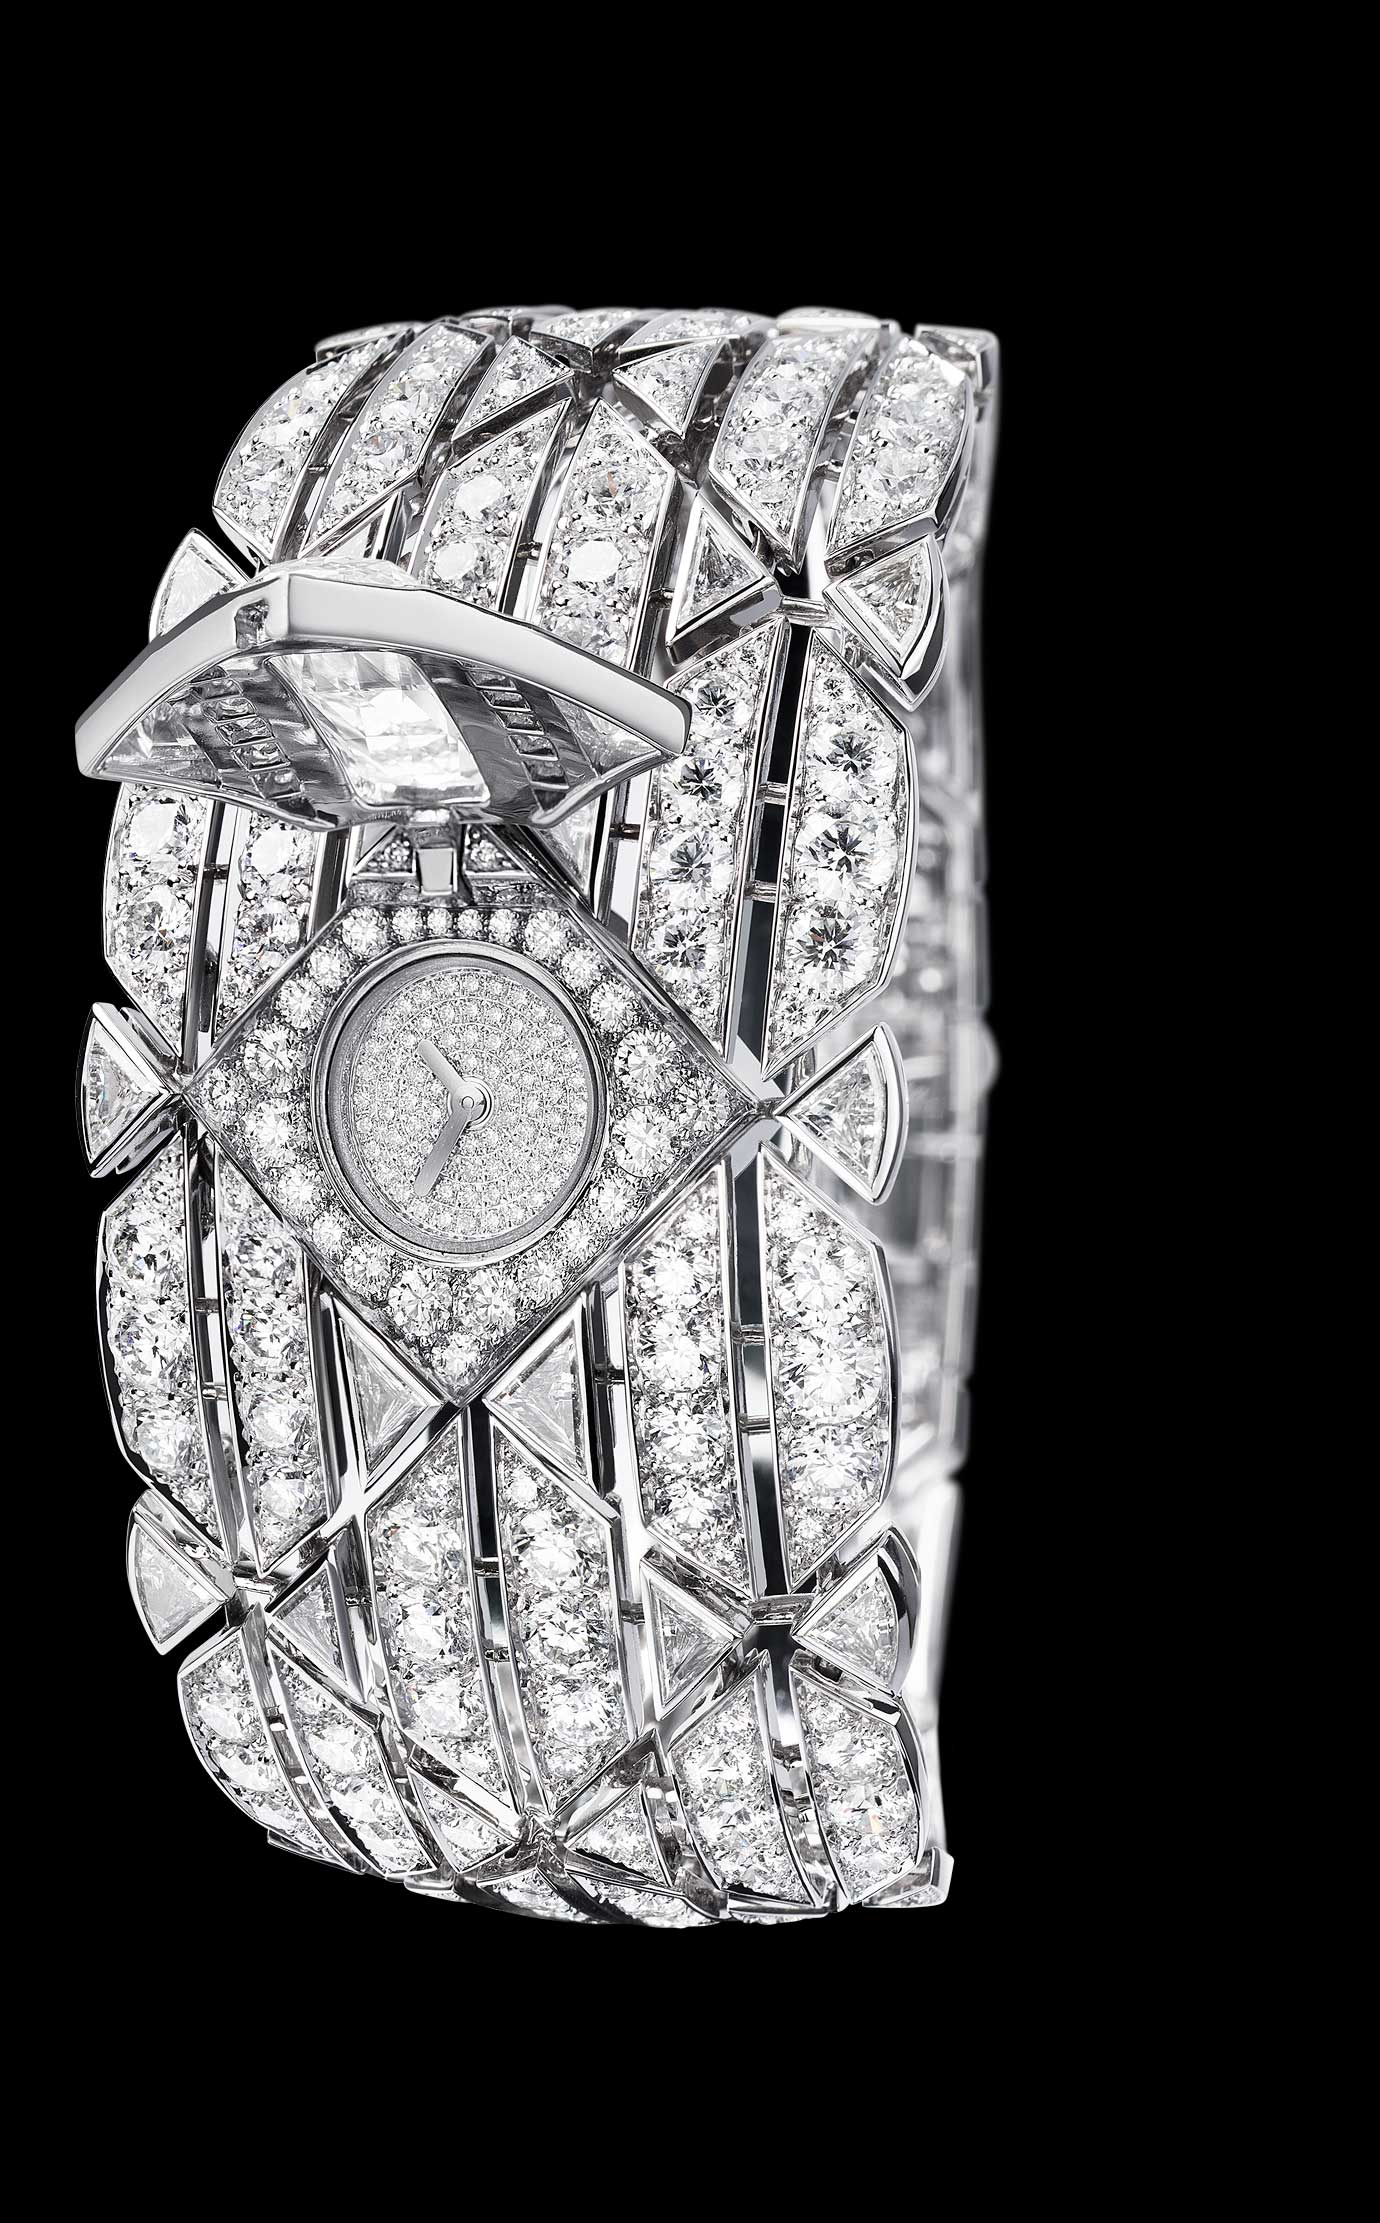 Les Eternelles de CHANEL. Secret cuff watch in 18K white gold. 5.26 carat exceptional diamond. 																											 - Open - Enlarged view